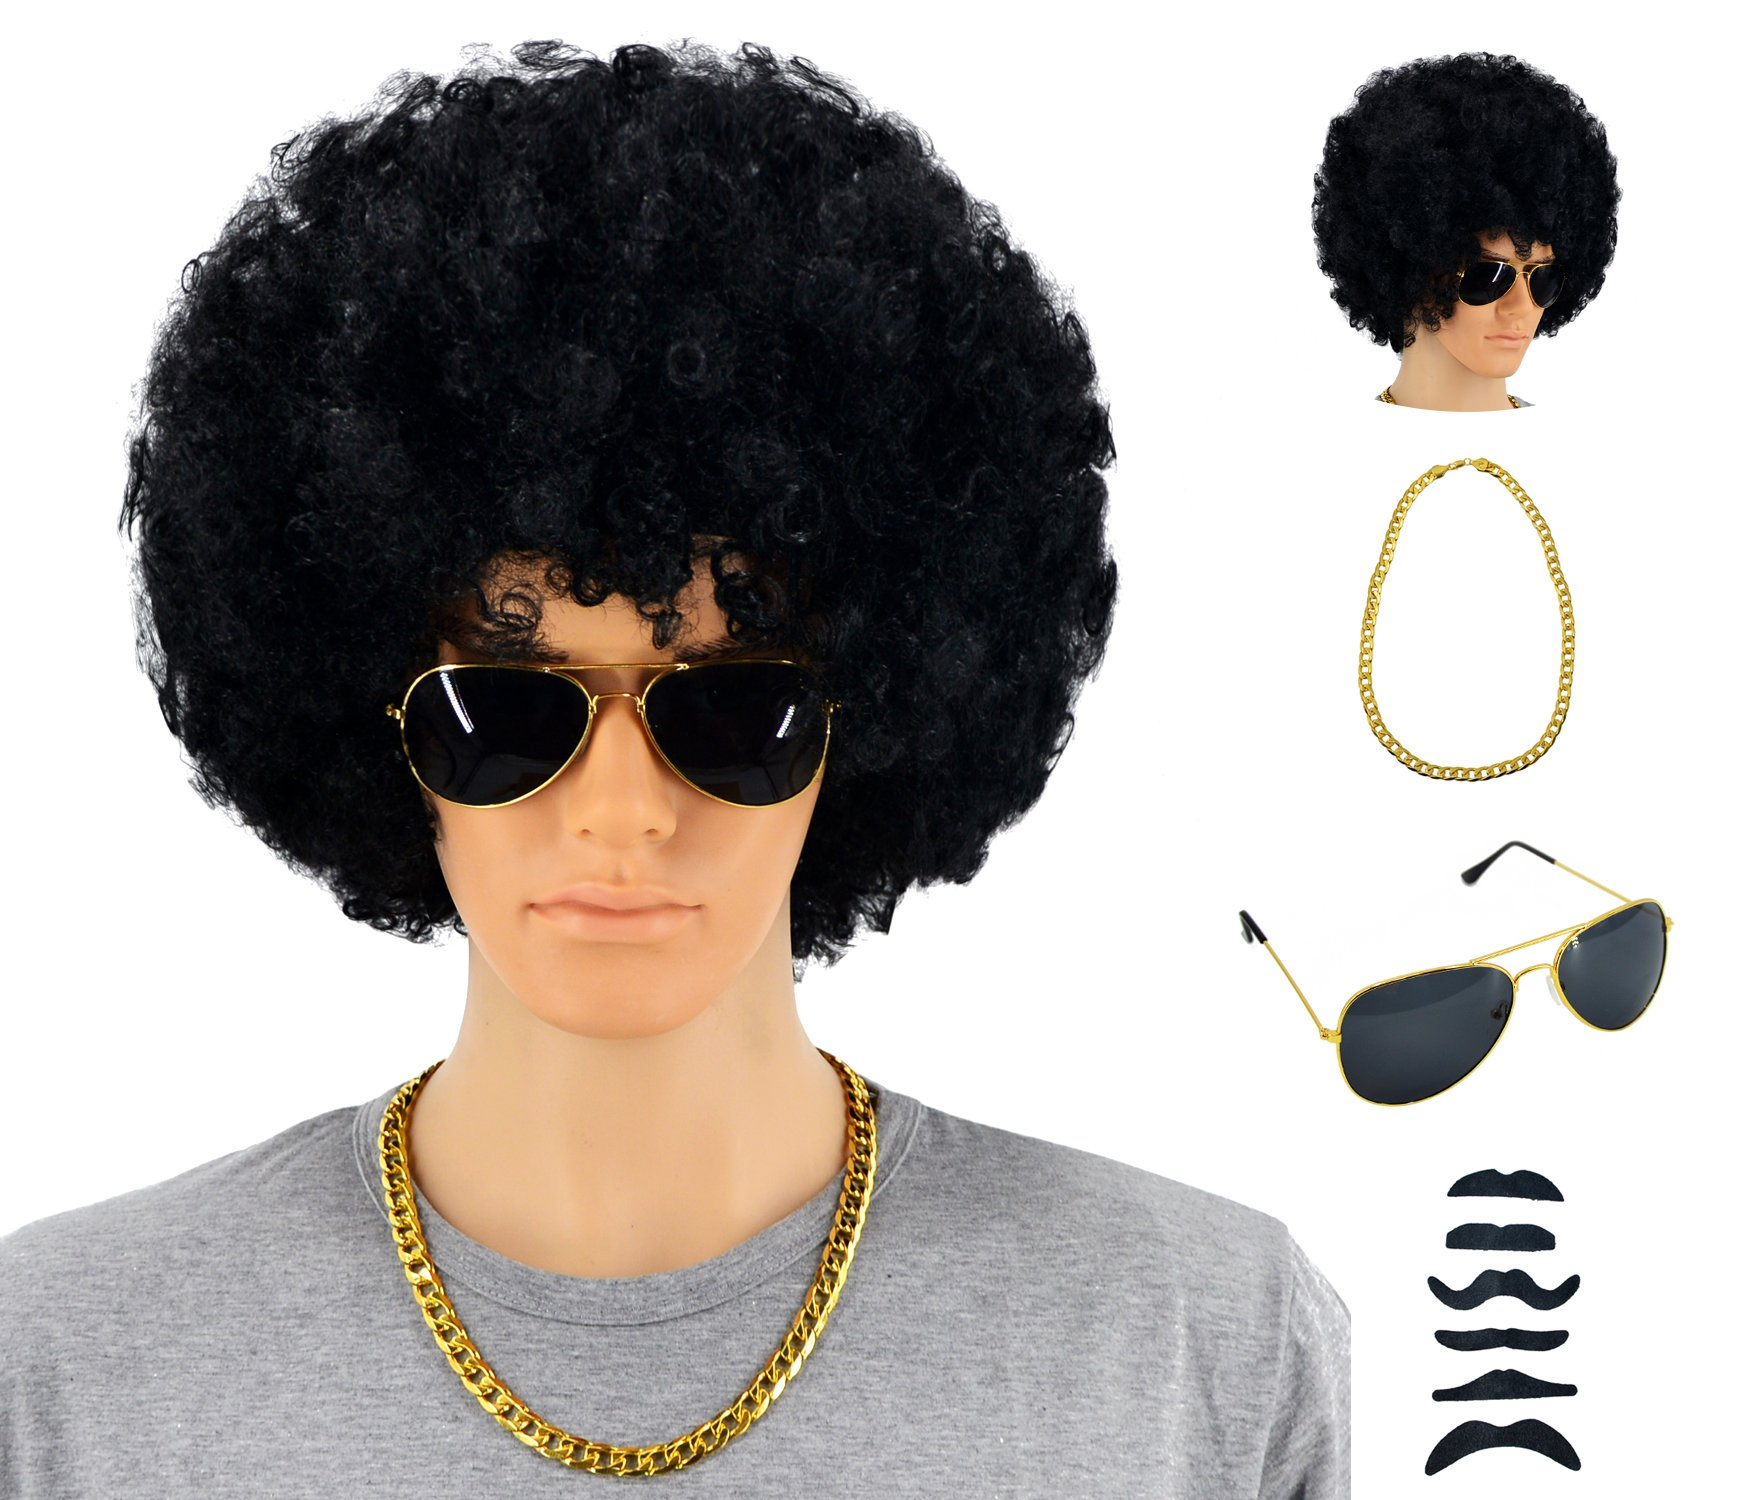 70s 80s 90s Disco Rock Star Heavy Metal Costume Mega-Huge Wig Set with Sunglasses & Necklace & Fake Mustache